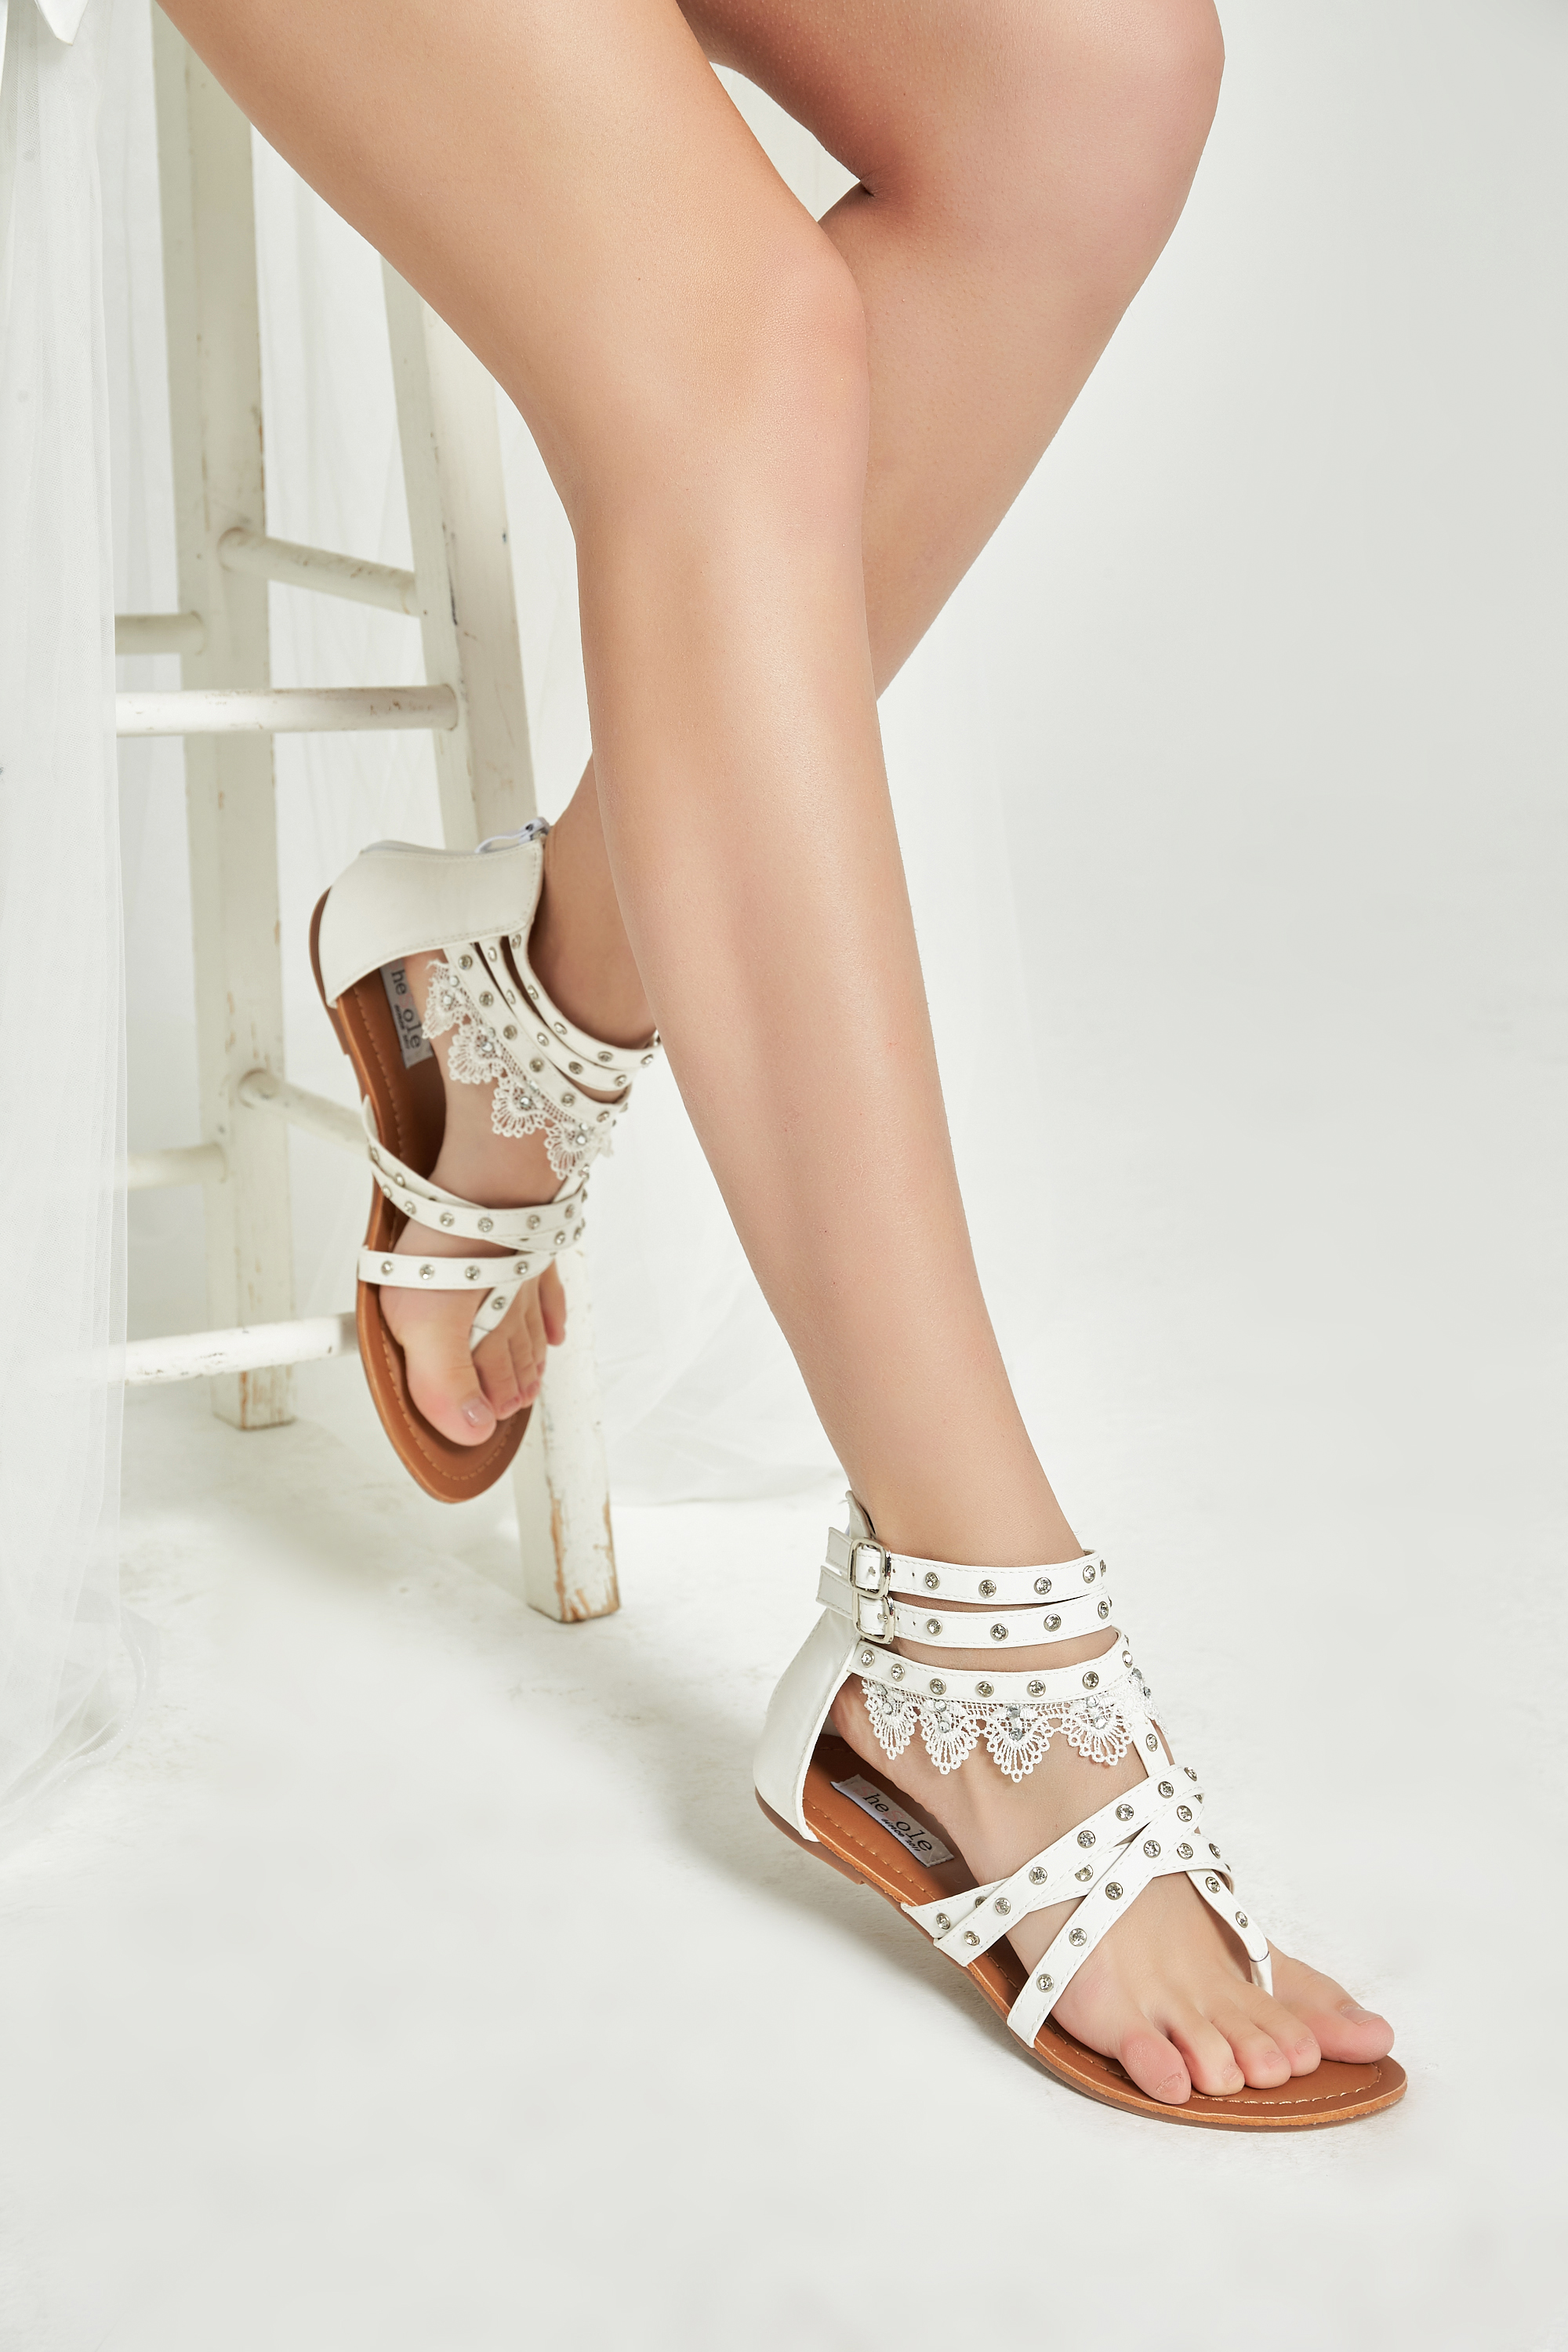 Shesole Womens Casual Flat Gladiator Sandals Lace Beach -1879